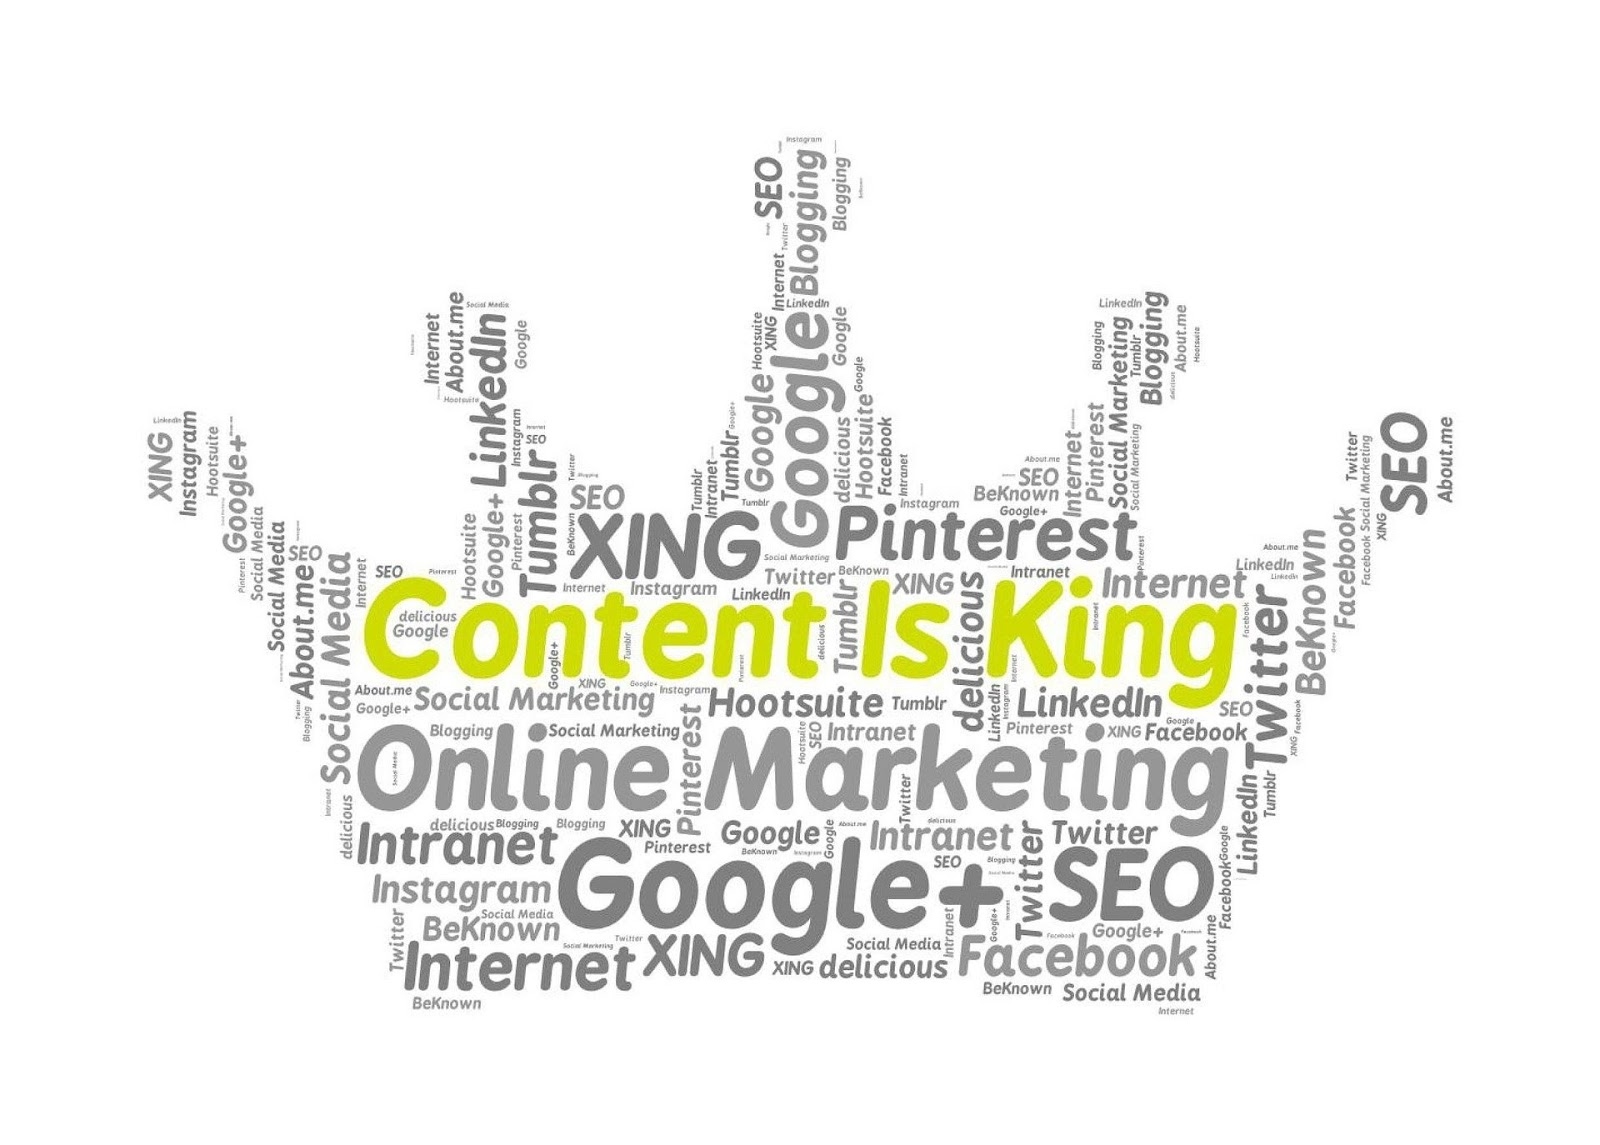 Content Writer in HP, Best Content Writer Services in Himachal, Content Writer Services In Himachal Pradesh, Low Cost Content Writer in Himachal, Content Writer in HP, Freelance Content Writer in HP, SEO Friendly Content Writer in Himachal